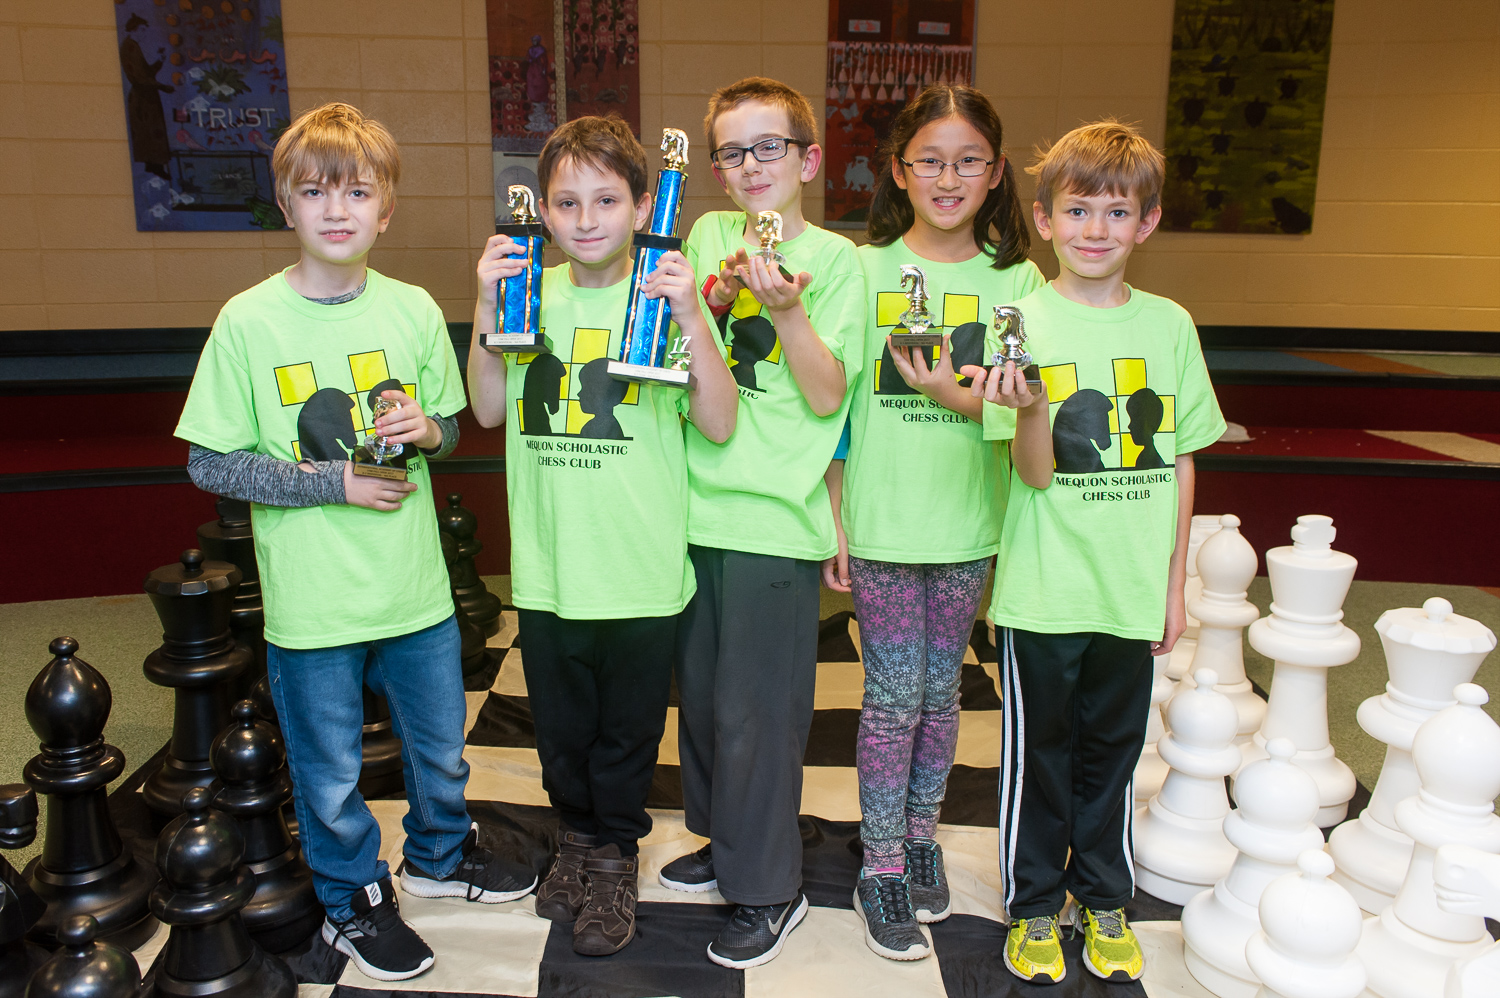 Mequon Scholastic Chess Club » Great Efforts at USM Chess